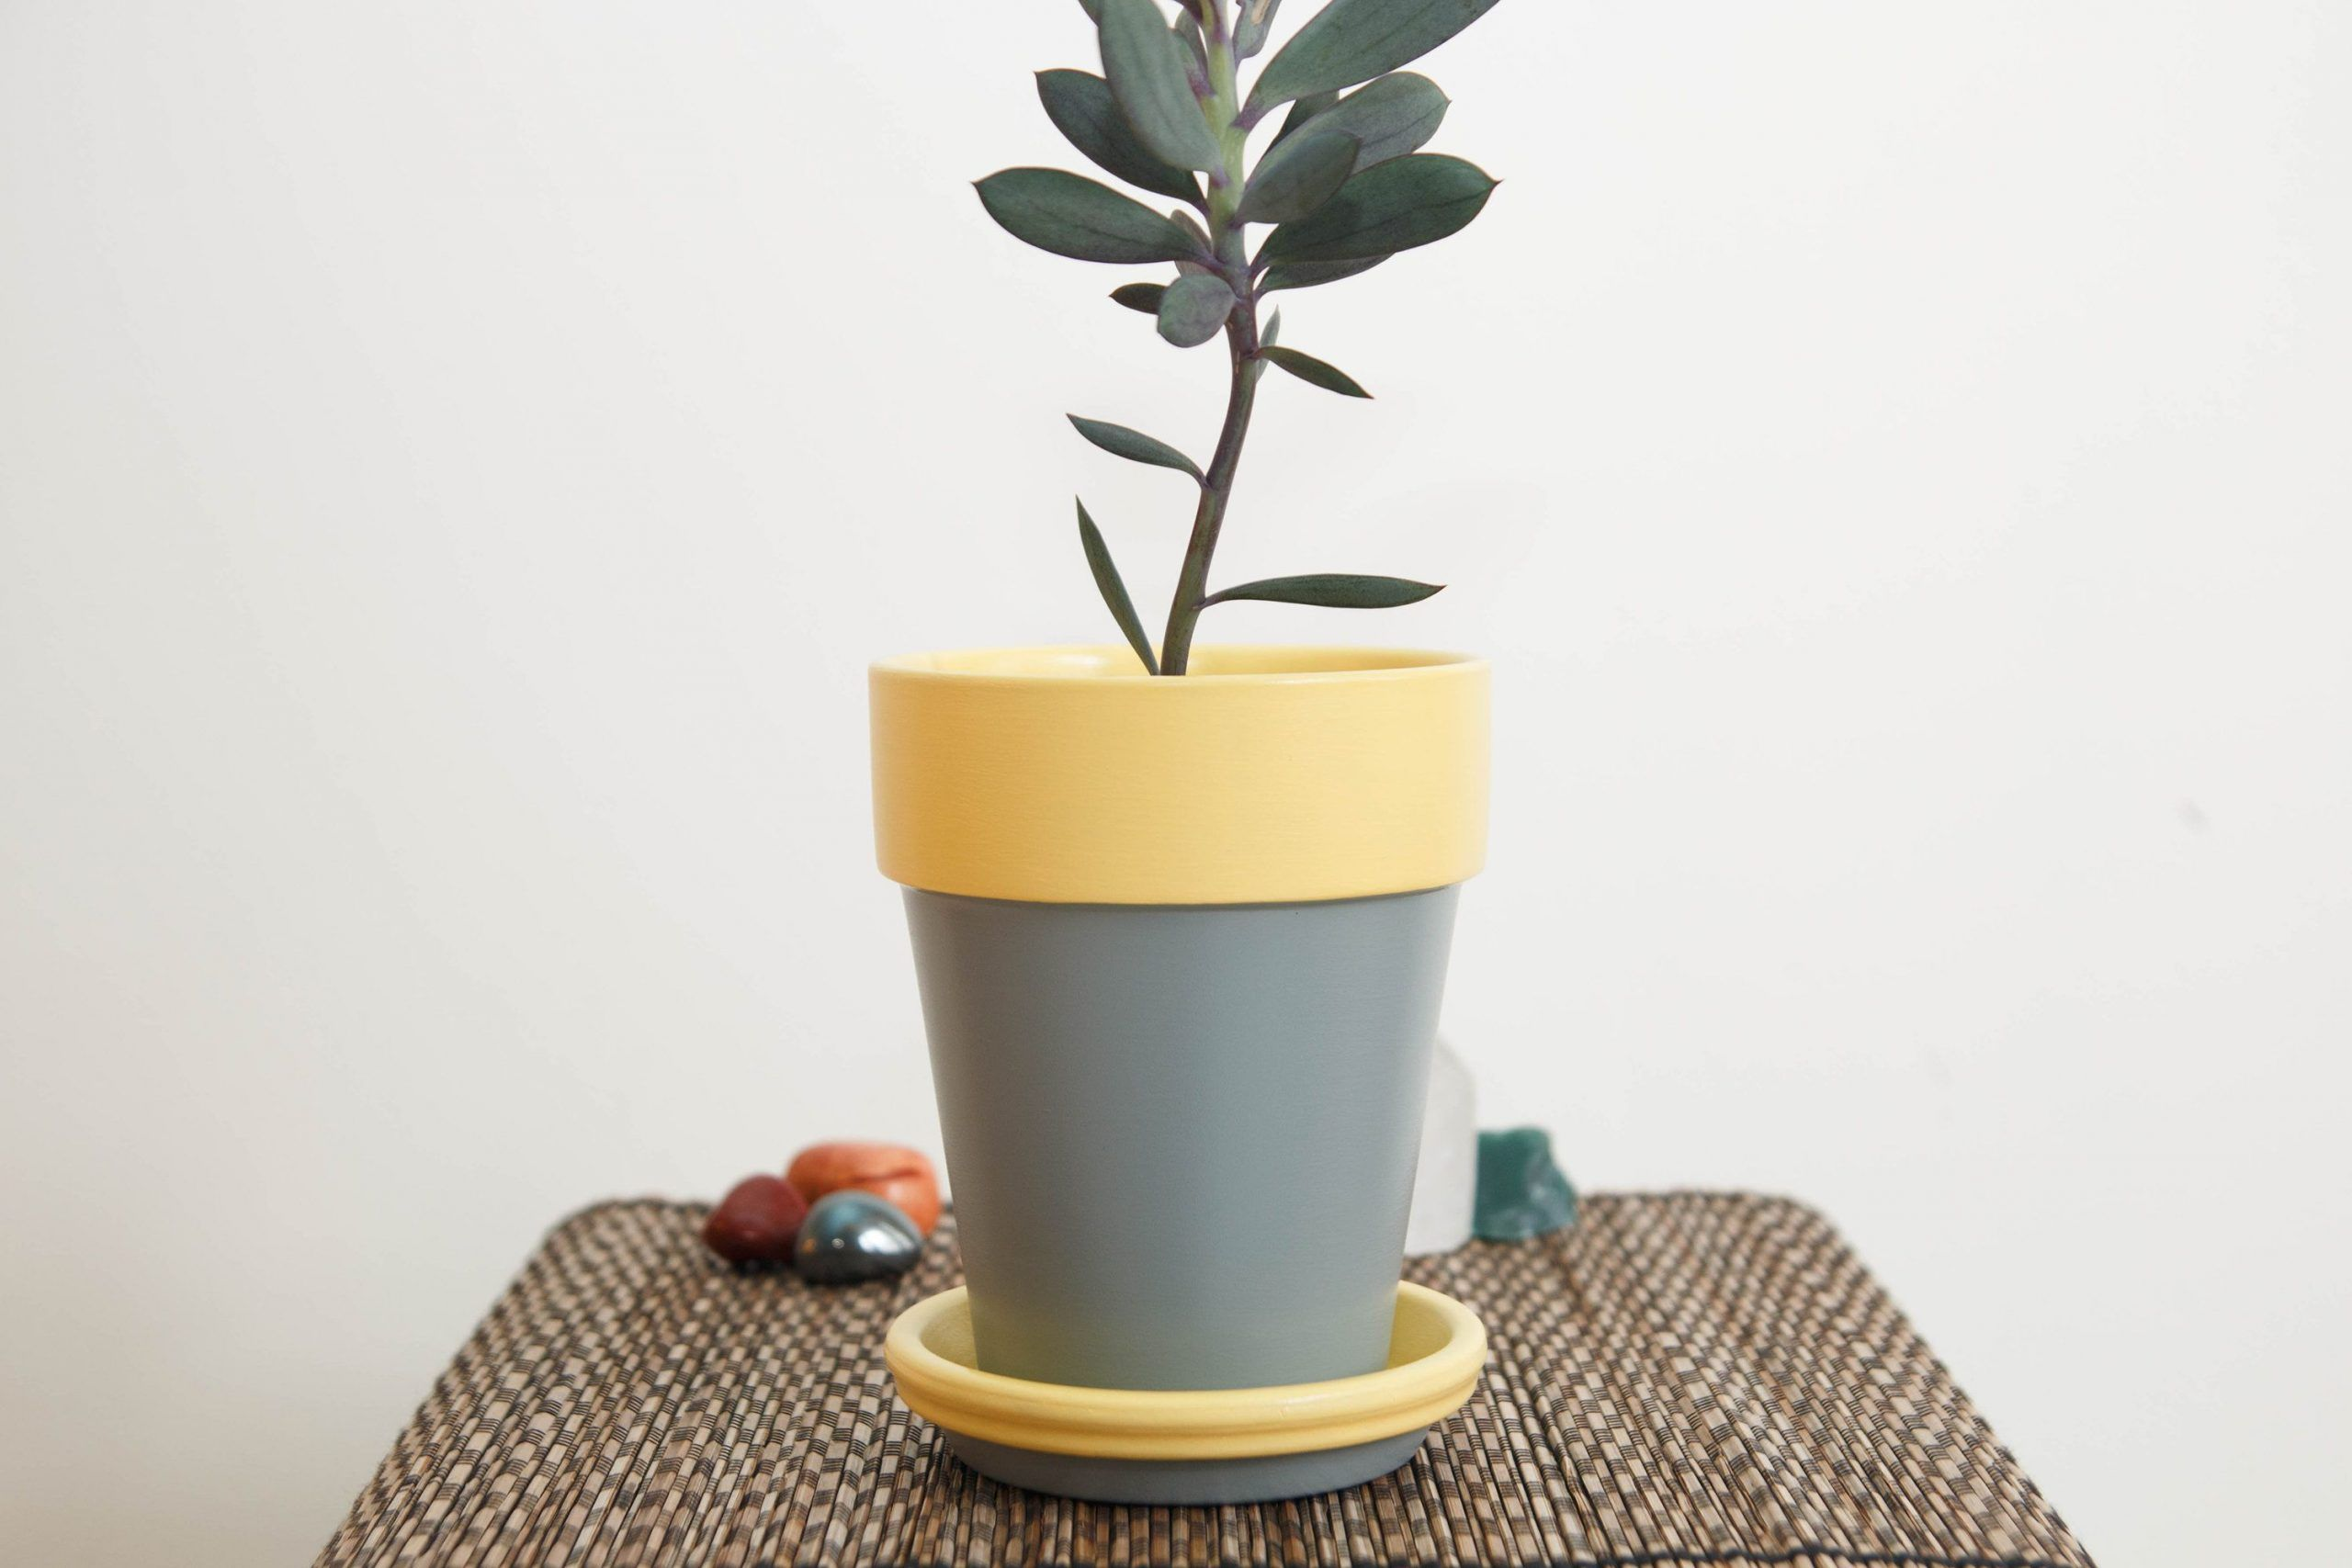 Mindful Hand Painted 4 1 2 Inch Gray And Yellow Abstract Acrylic Pot Decorative Pot Terracotta Pot Succulent Pot Home Decor In 2020 Decorative Pots Terracotta Pots Abstract Acrylic